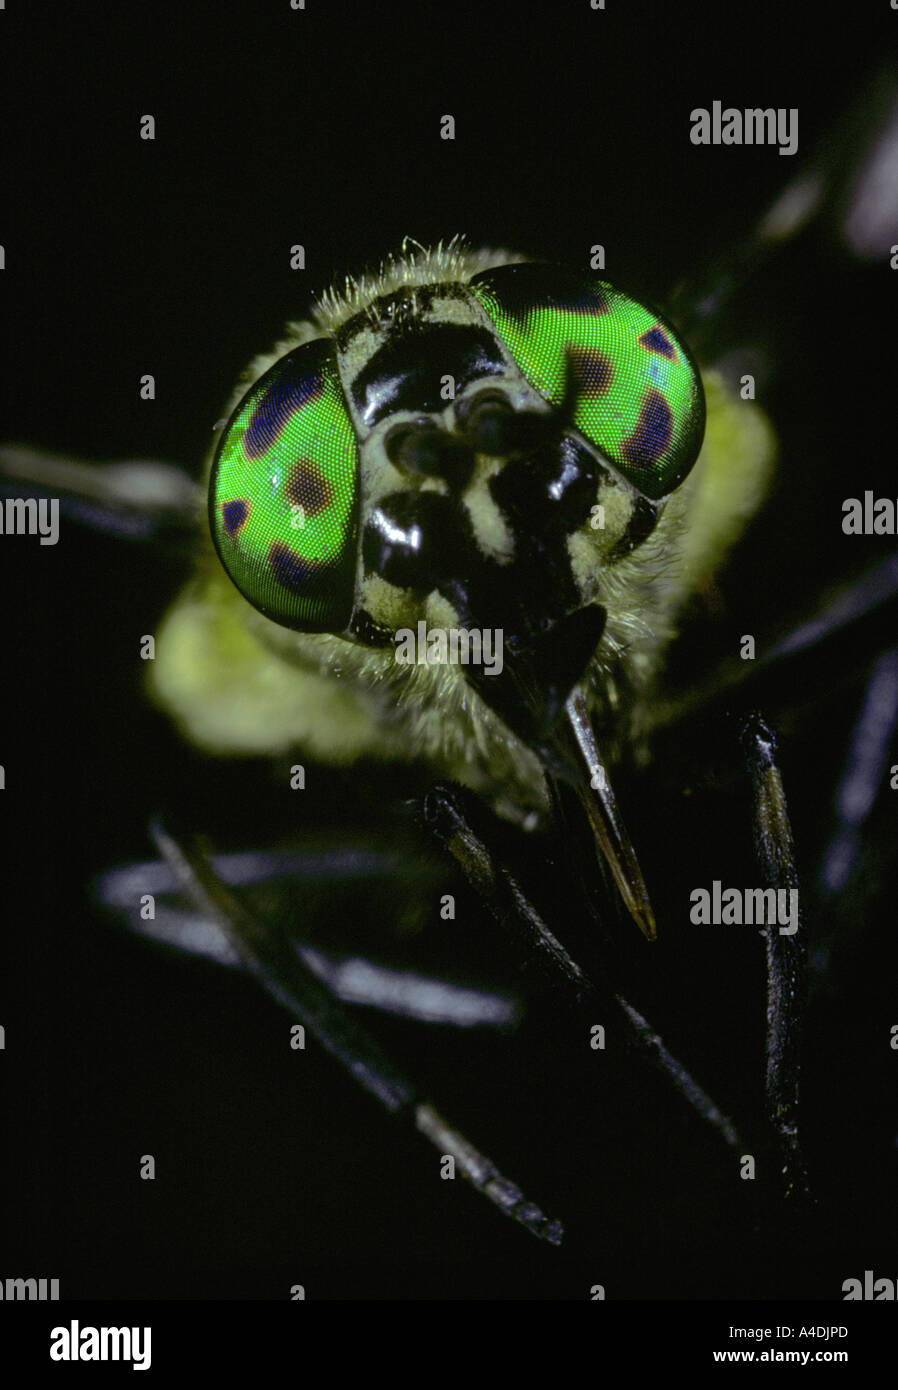 Iridescent compound eyes of deer fly or horsefly, Chrysops, comprised of many facets or ommatidia. - Stock Image